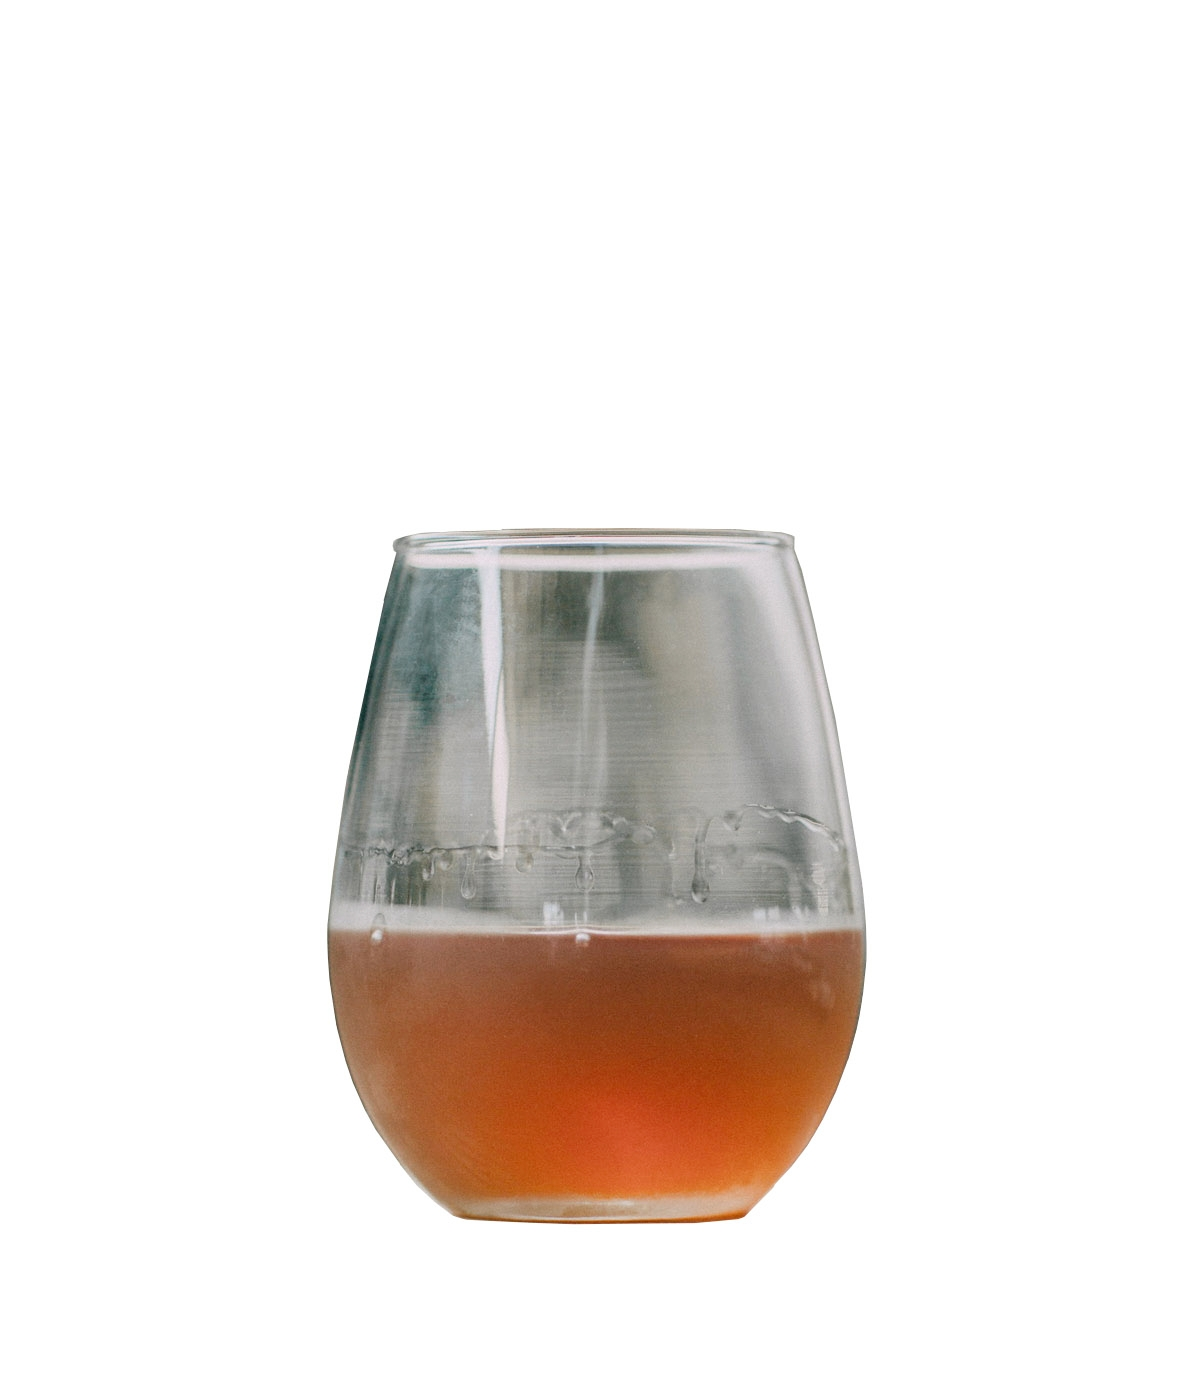 AQUAVIT NEAT  Chill Norseman Aquavit before serving, measure 60ml into a glass and raise a skål to prosperity.  Best enjoyed with herring.